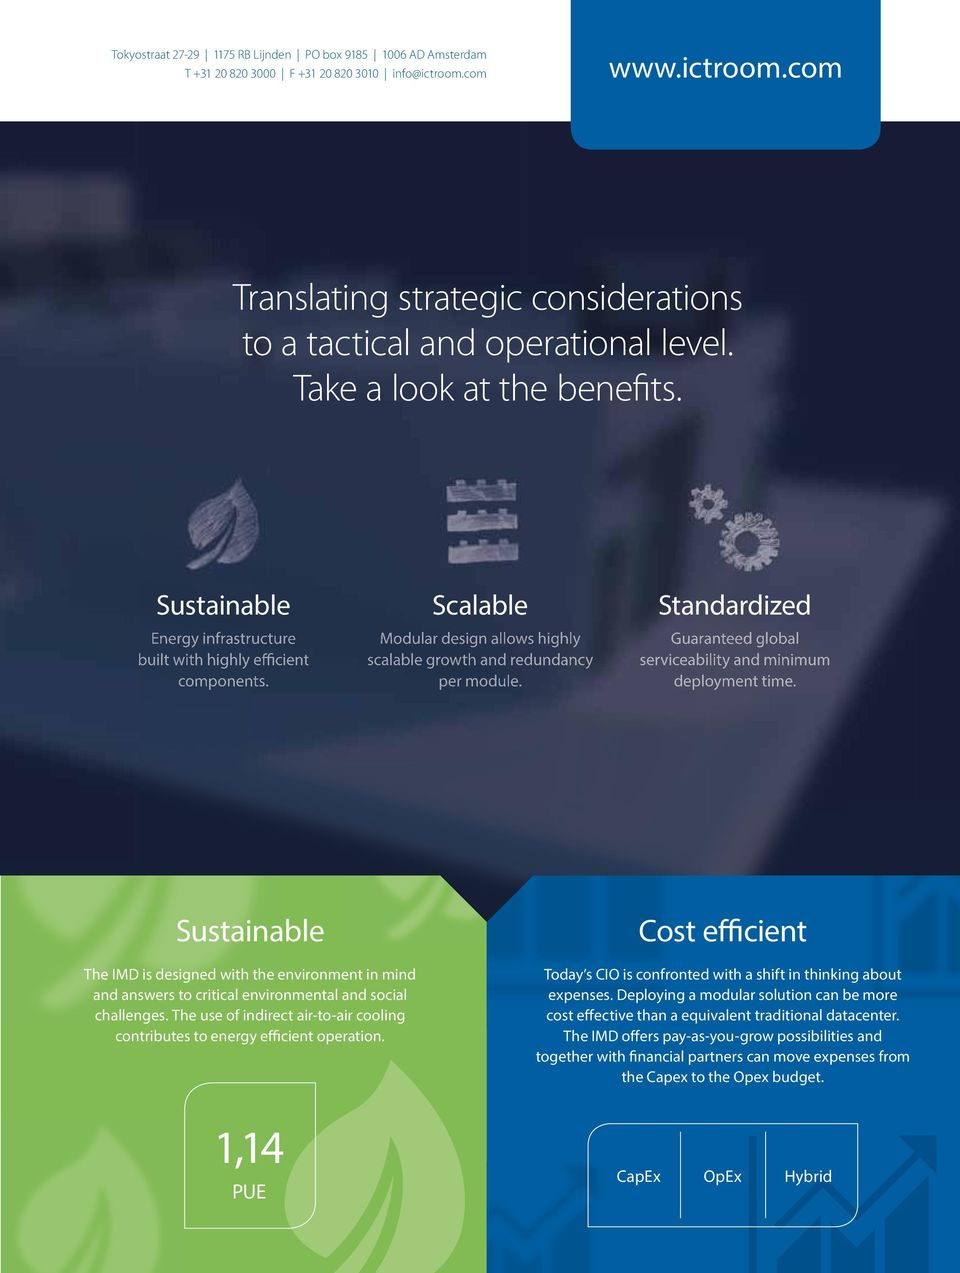 Standardized Guaranteed global serviceability and minimum deployment time.